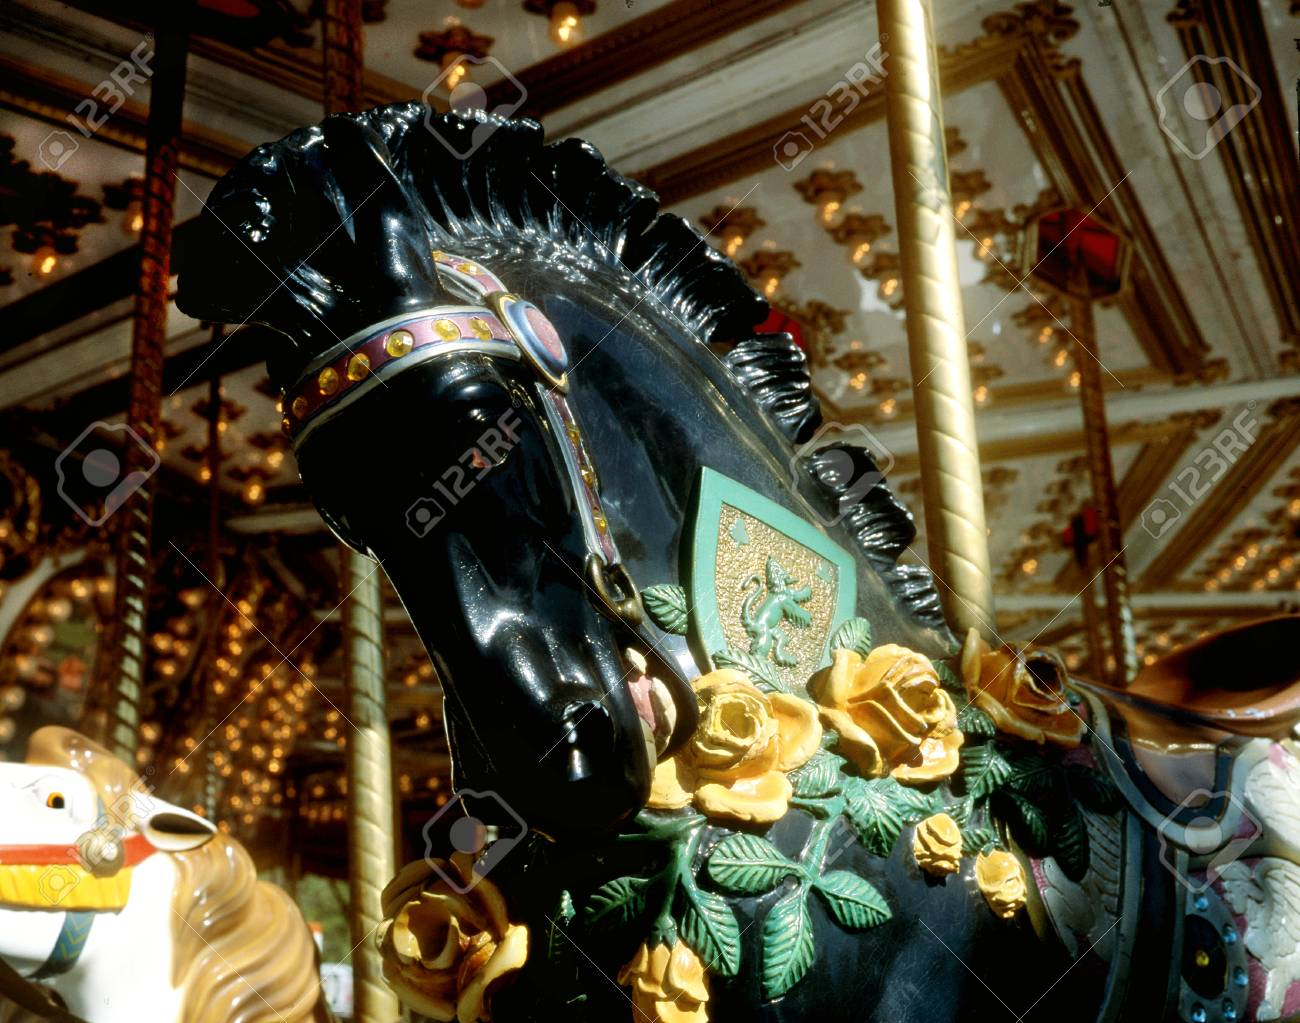 Black Carousel Horse With Yellow Roses Stock Photo Picture And Royalty Free Image Image 85608430